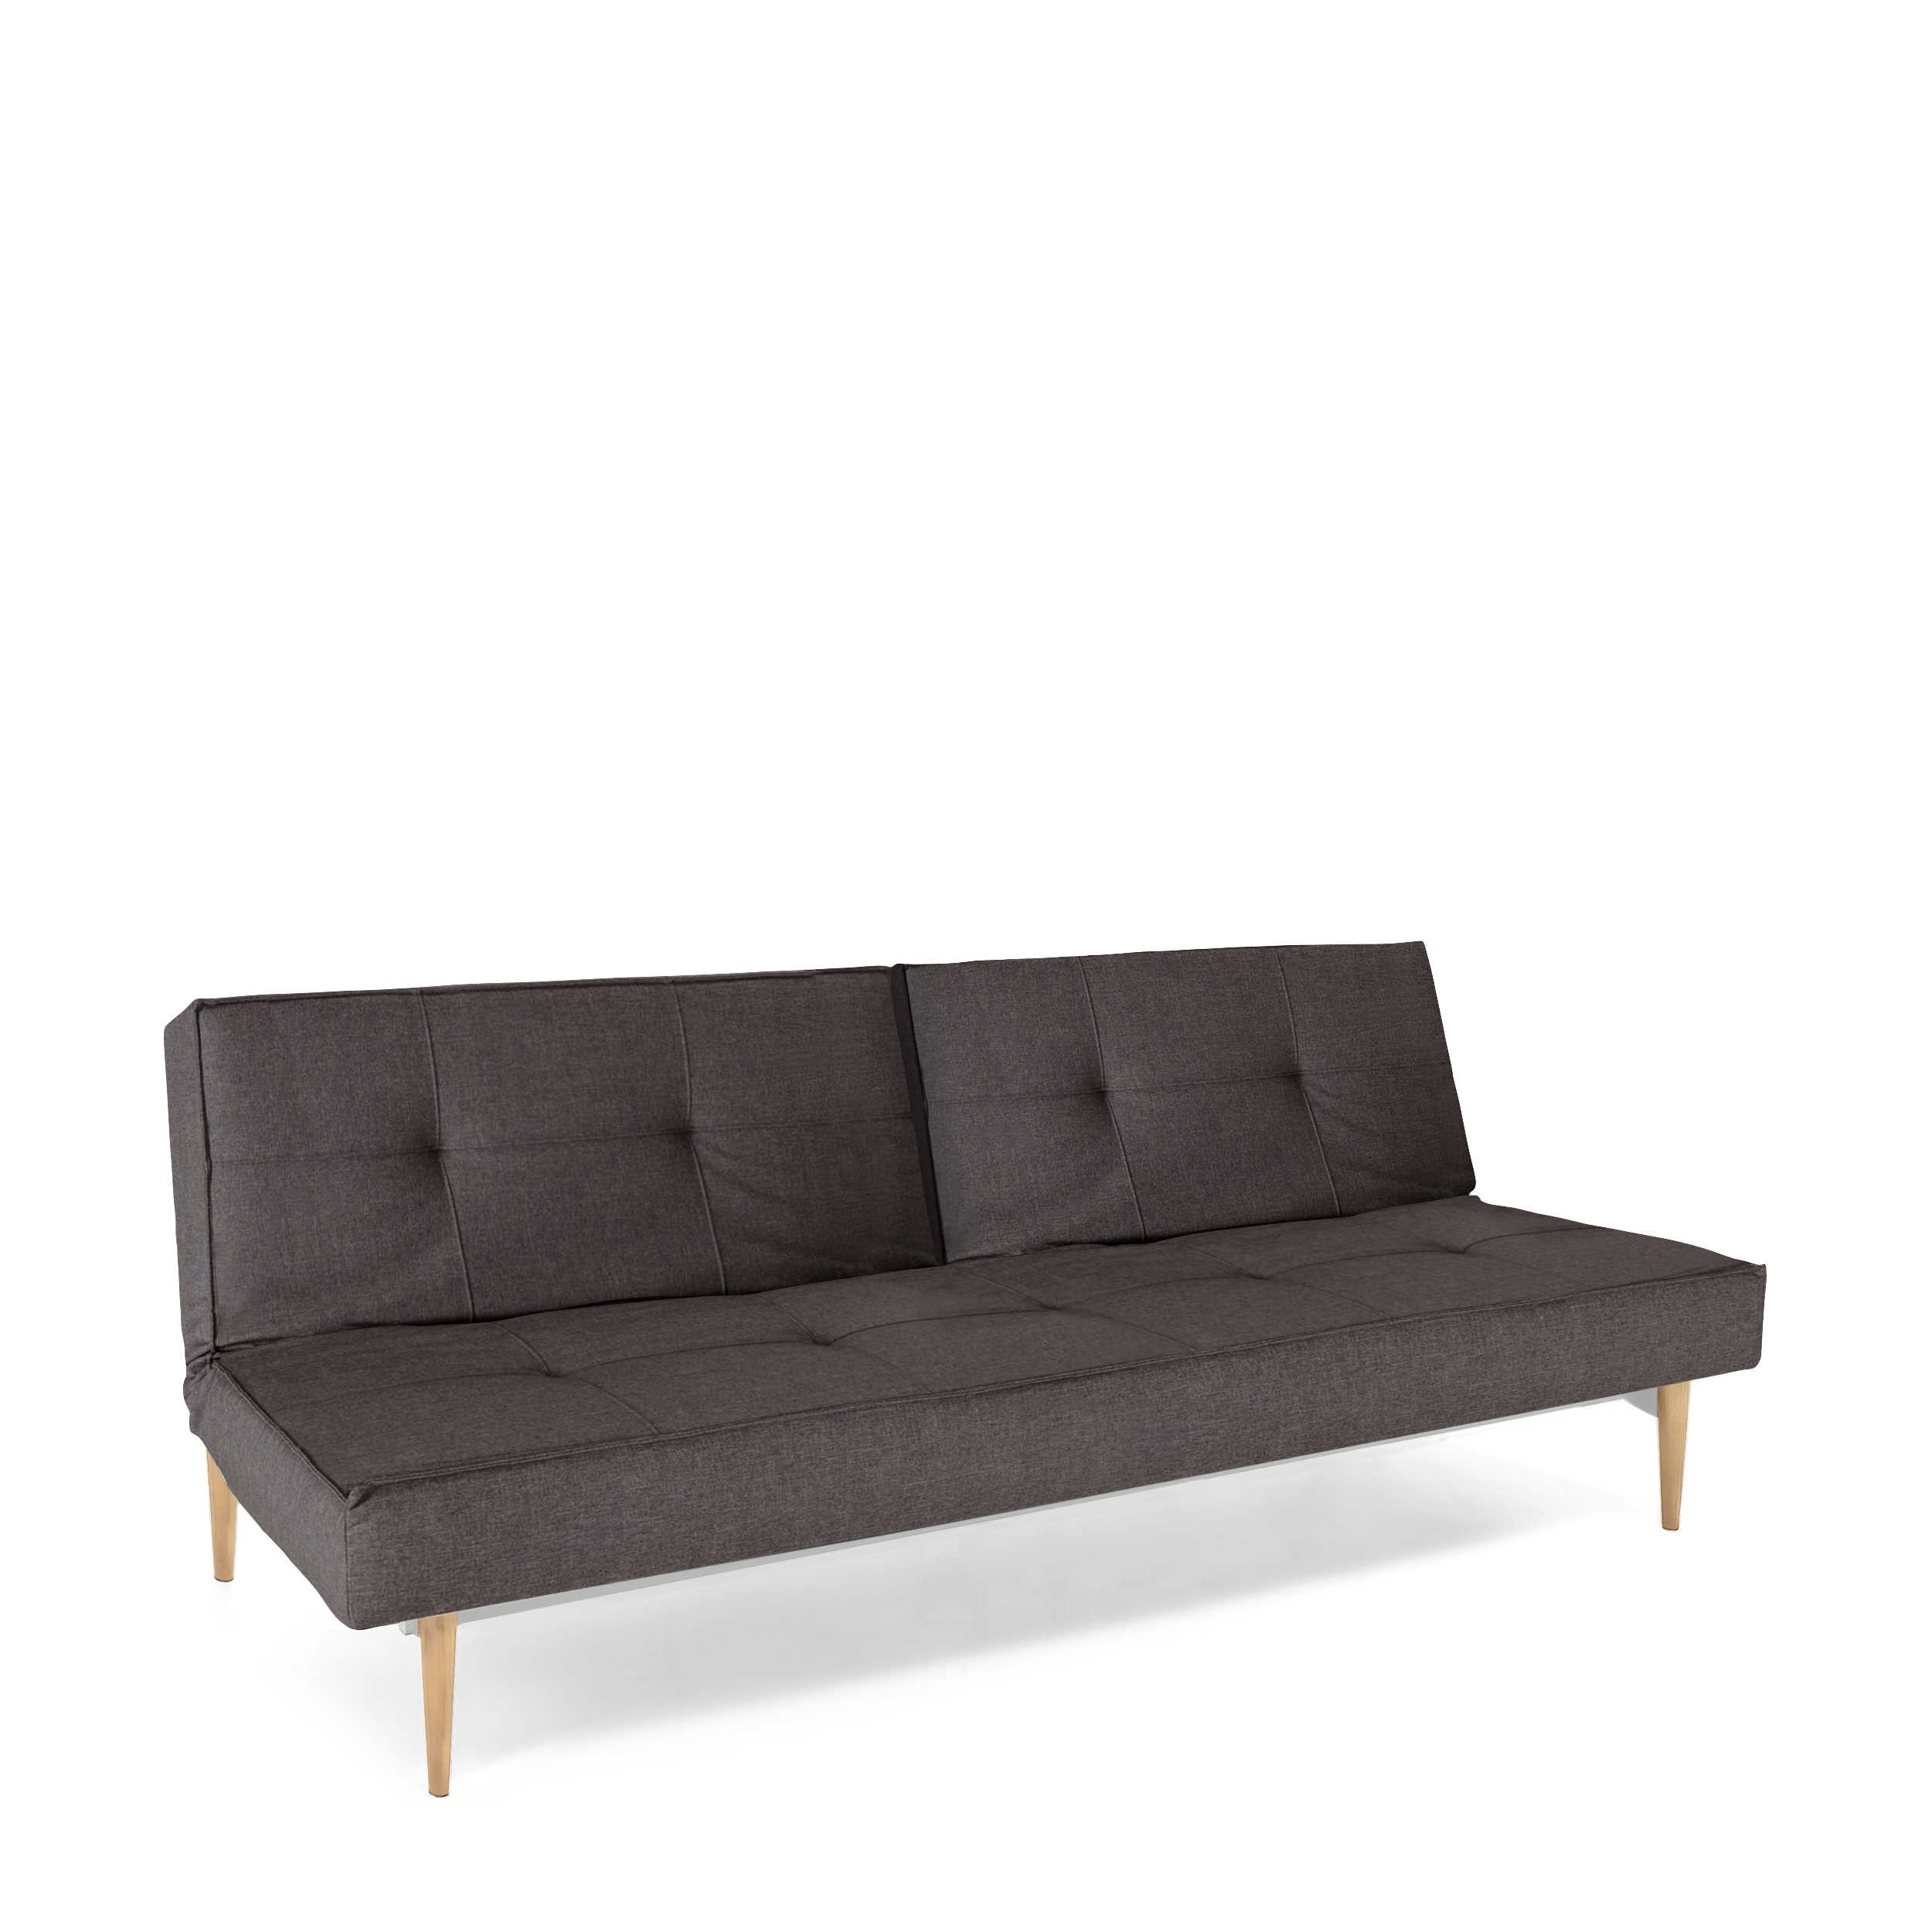 Innovation Schlafsofa Innovation Schlafsofa Splitback Styletto Hell Grau Stoff